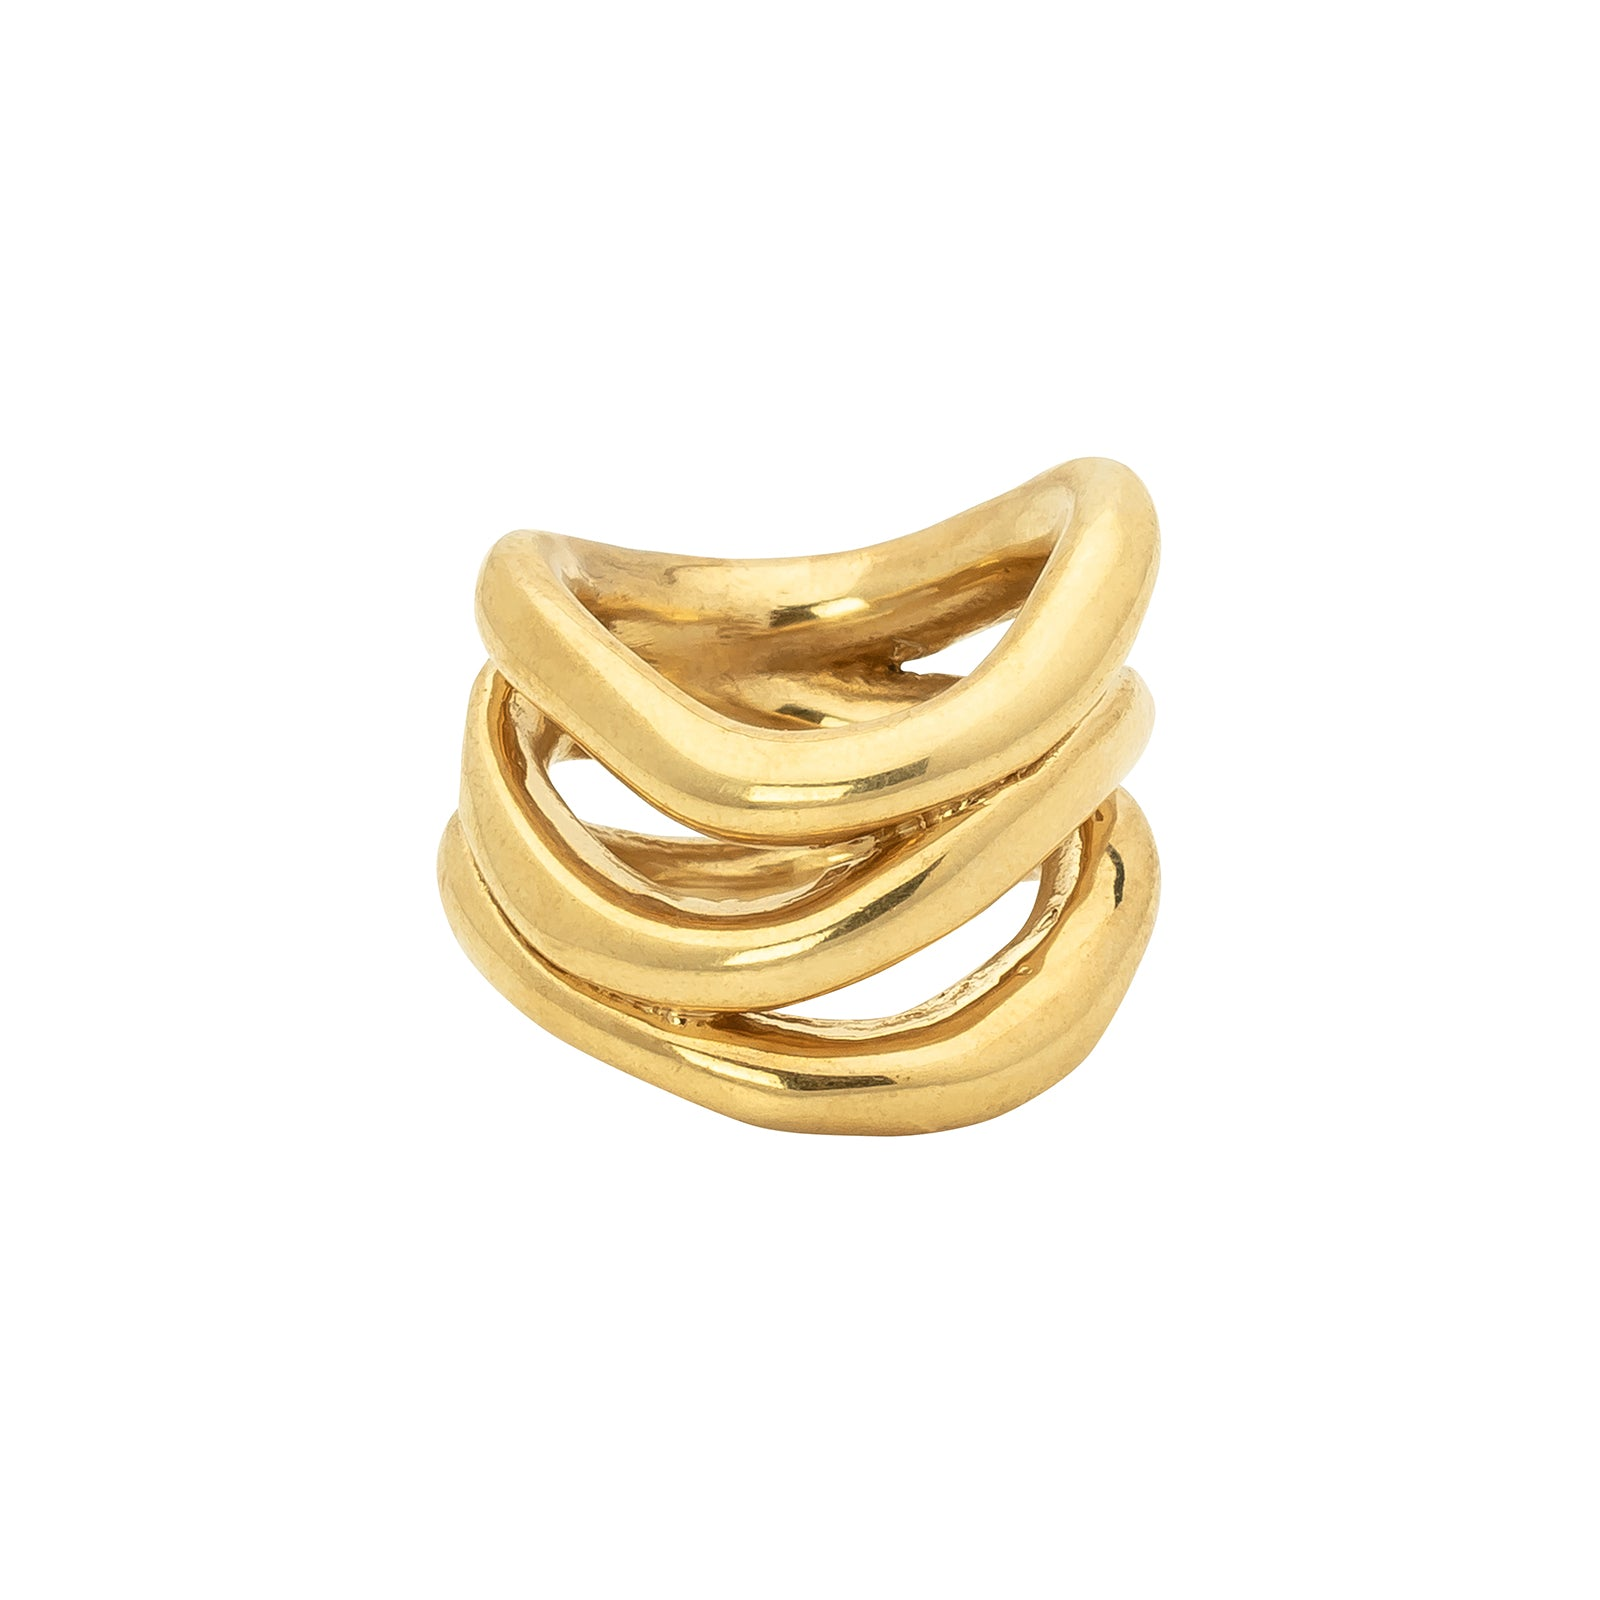 Ariana Boussard-Reifel Shishi Ring - Brass - Rings - Broken English Jewelry